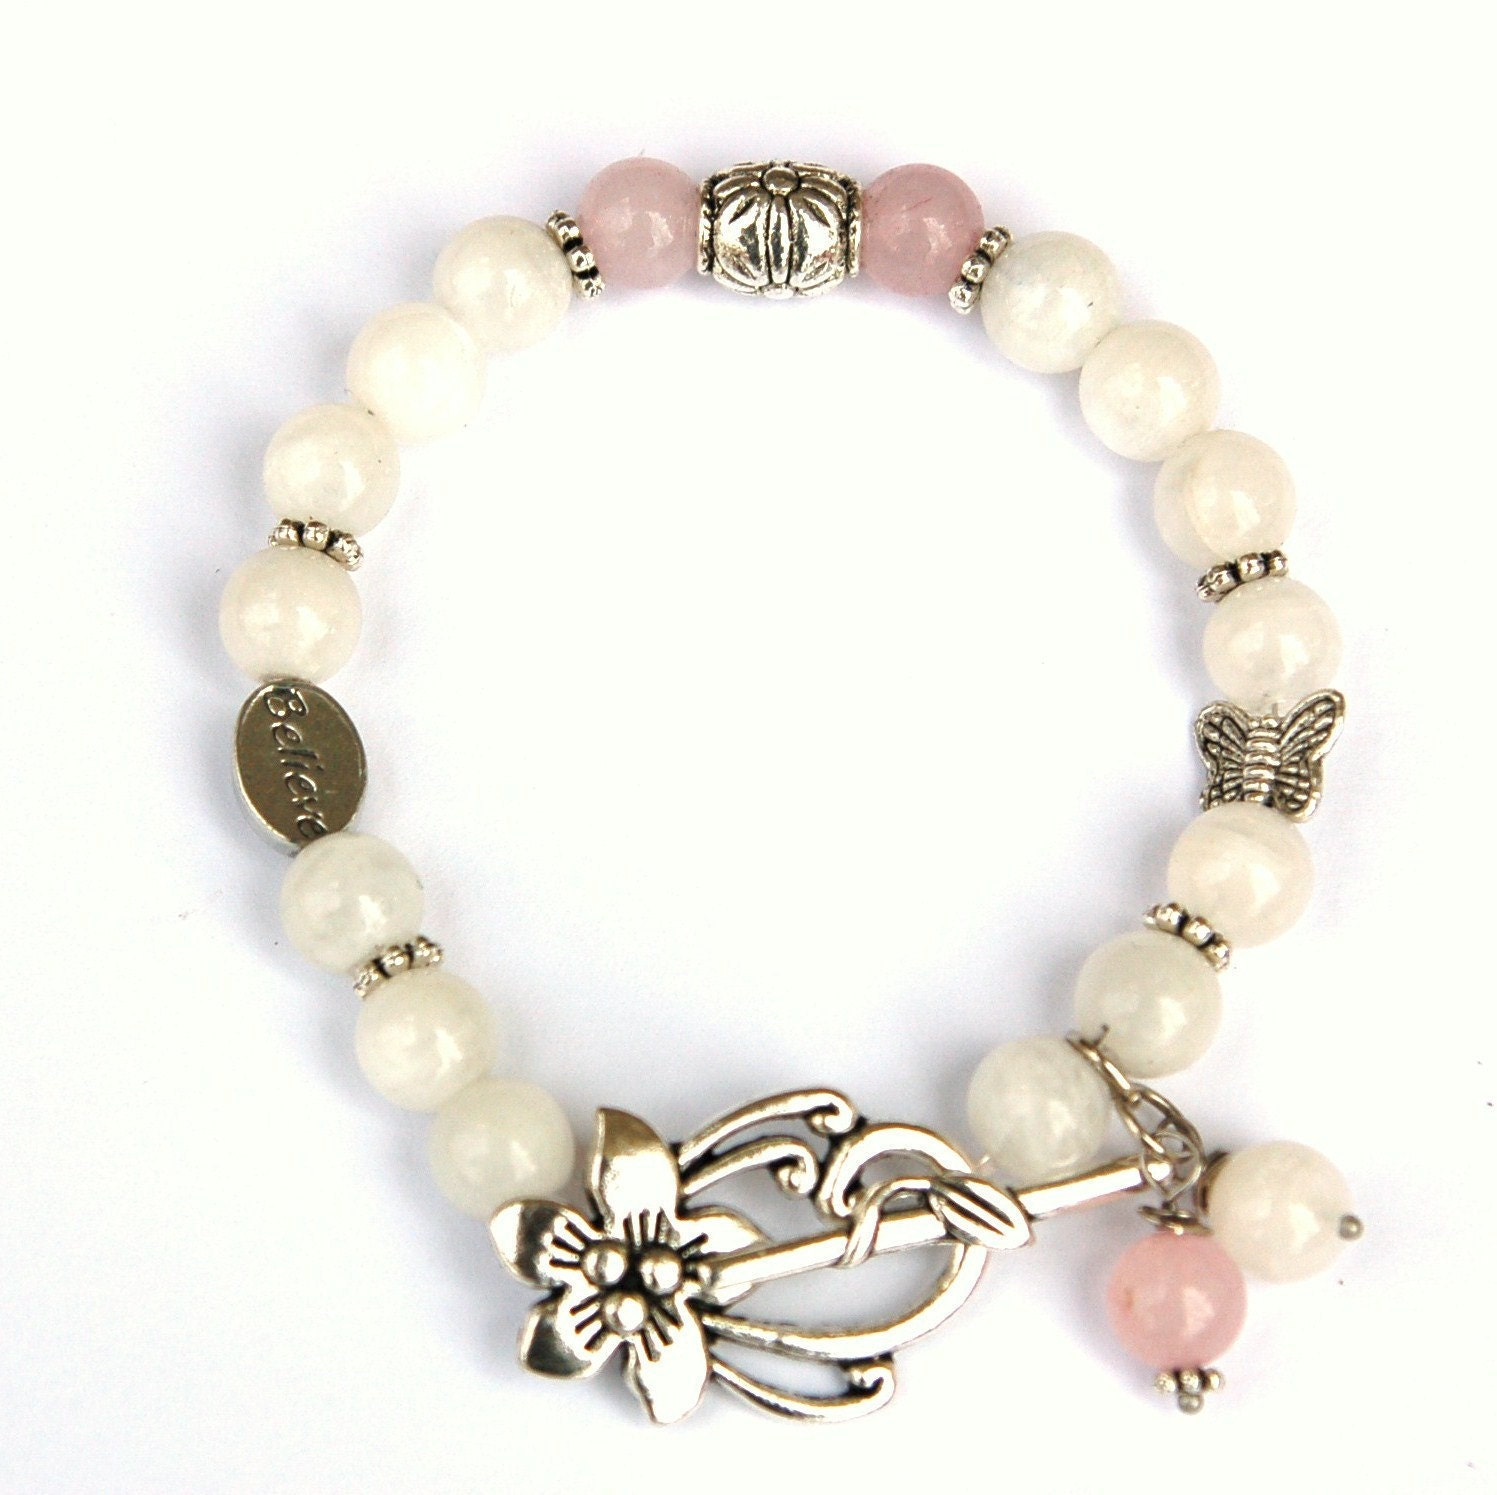 moonstone charms - photo #15